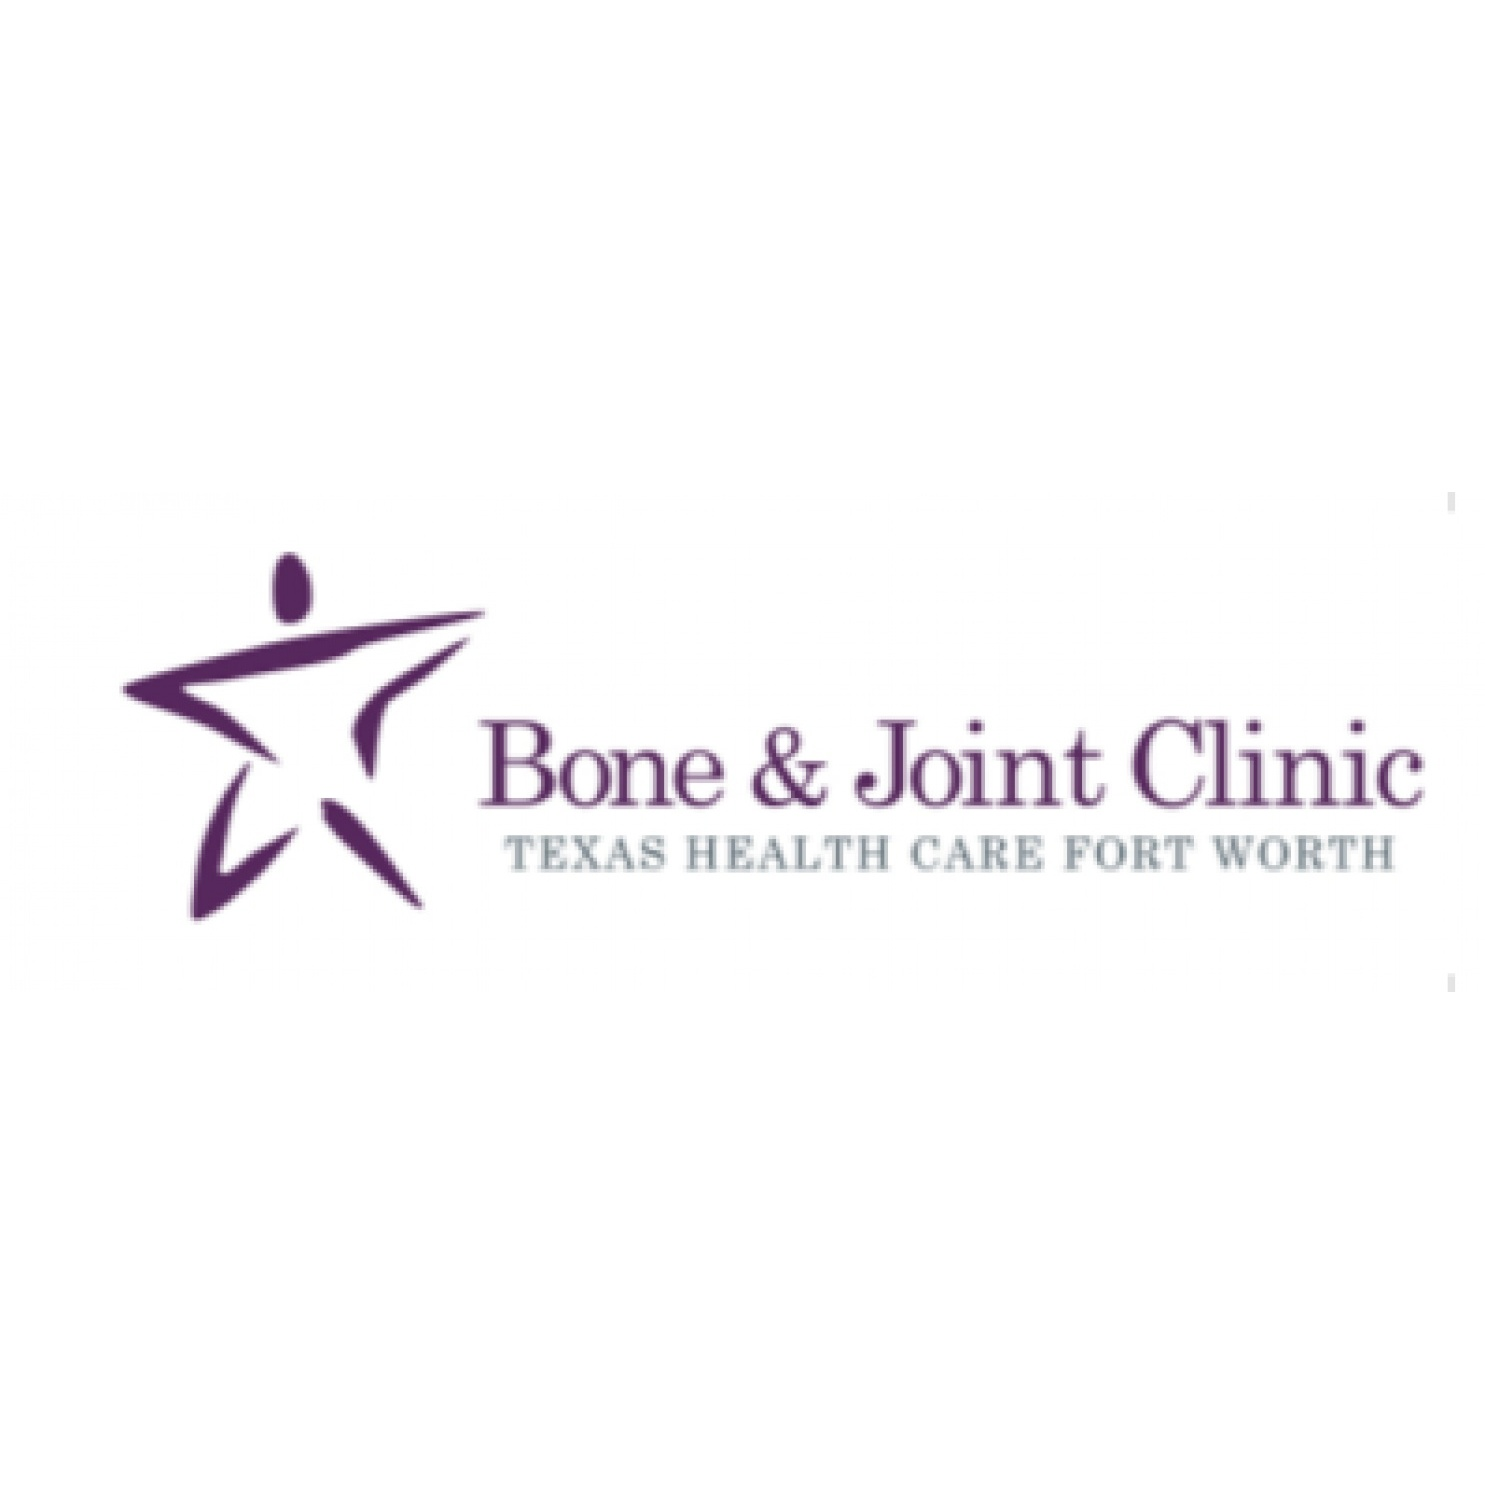 Texas Health Bone & Joint Clinic image 1